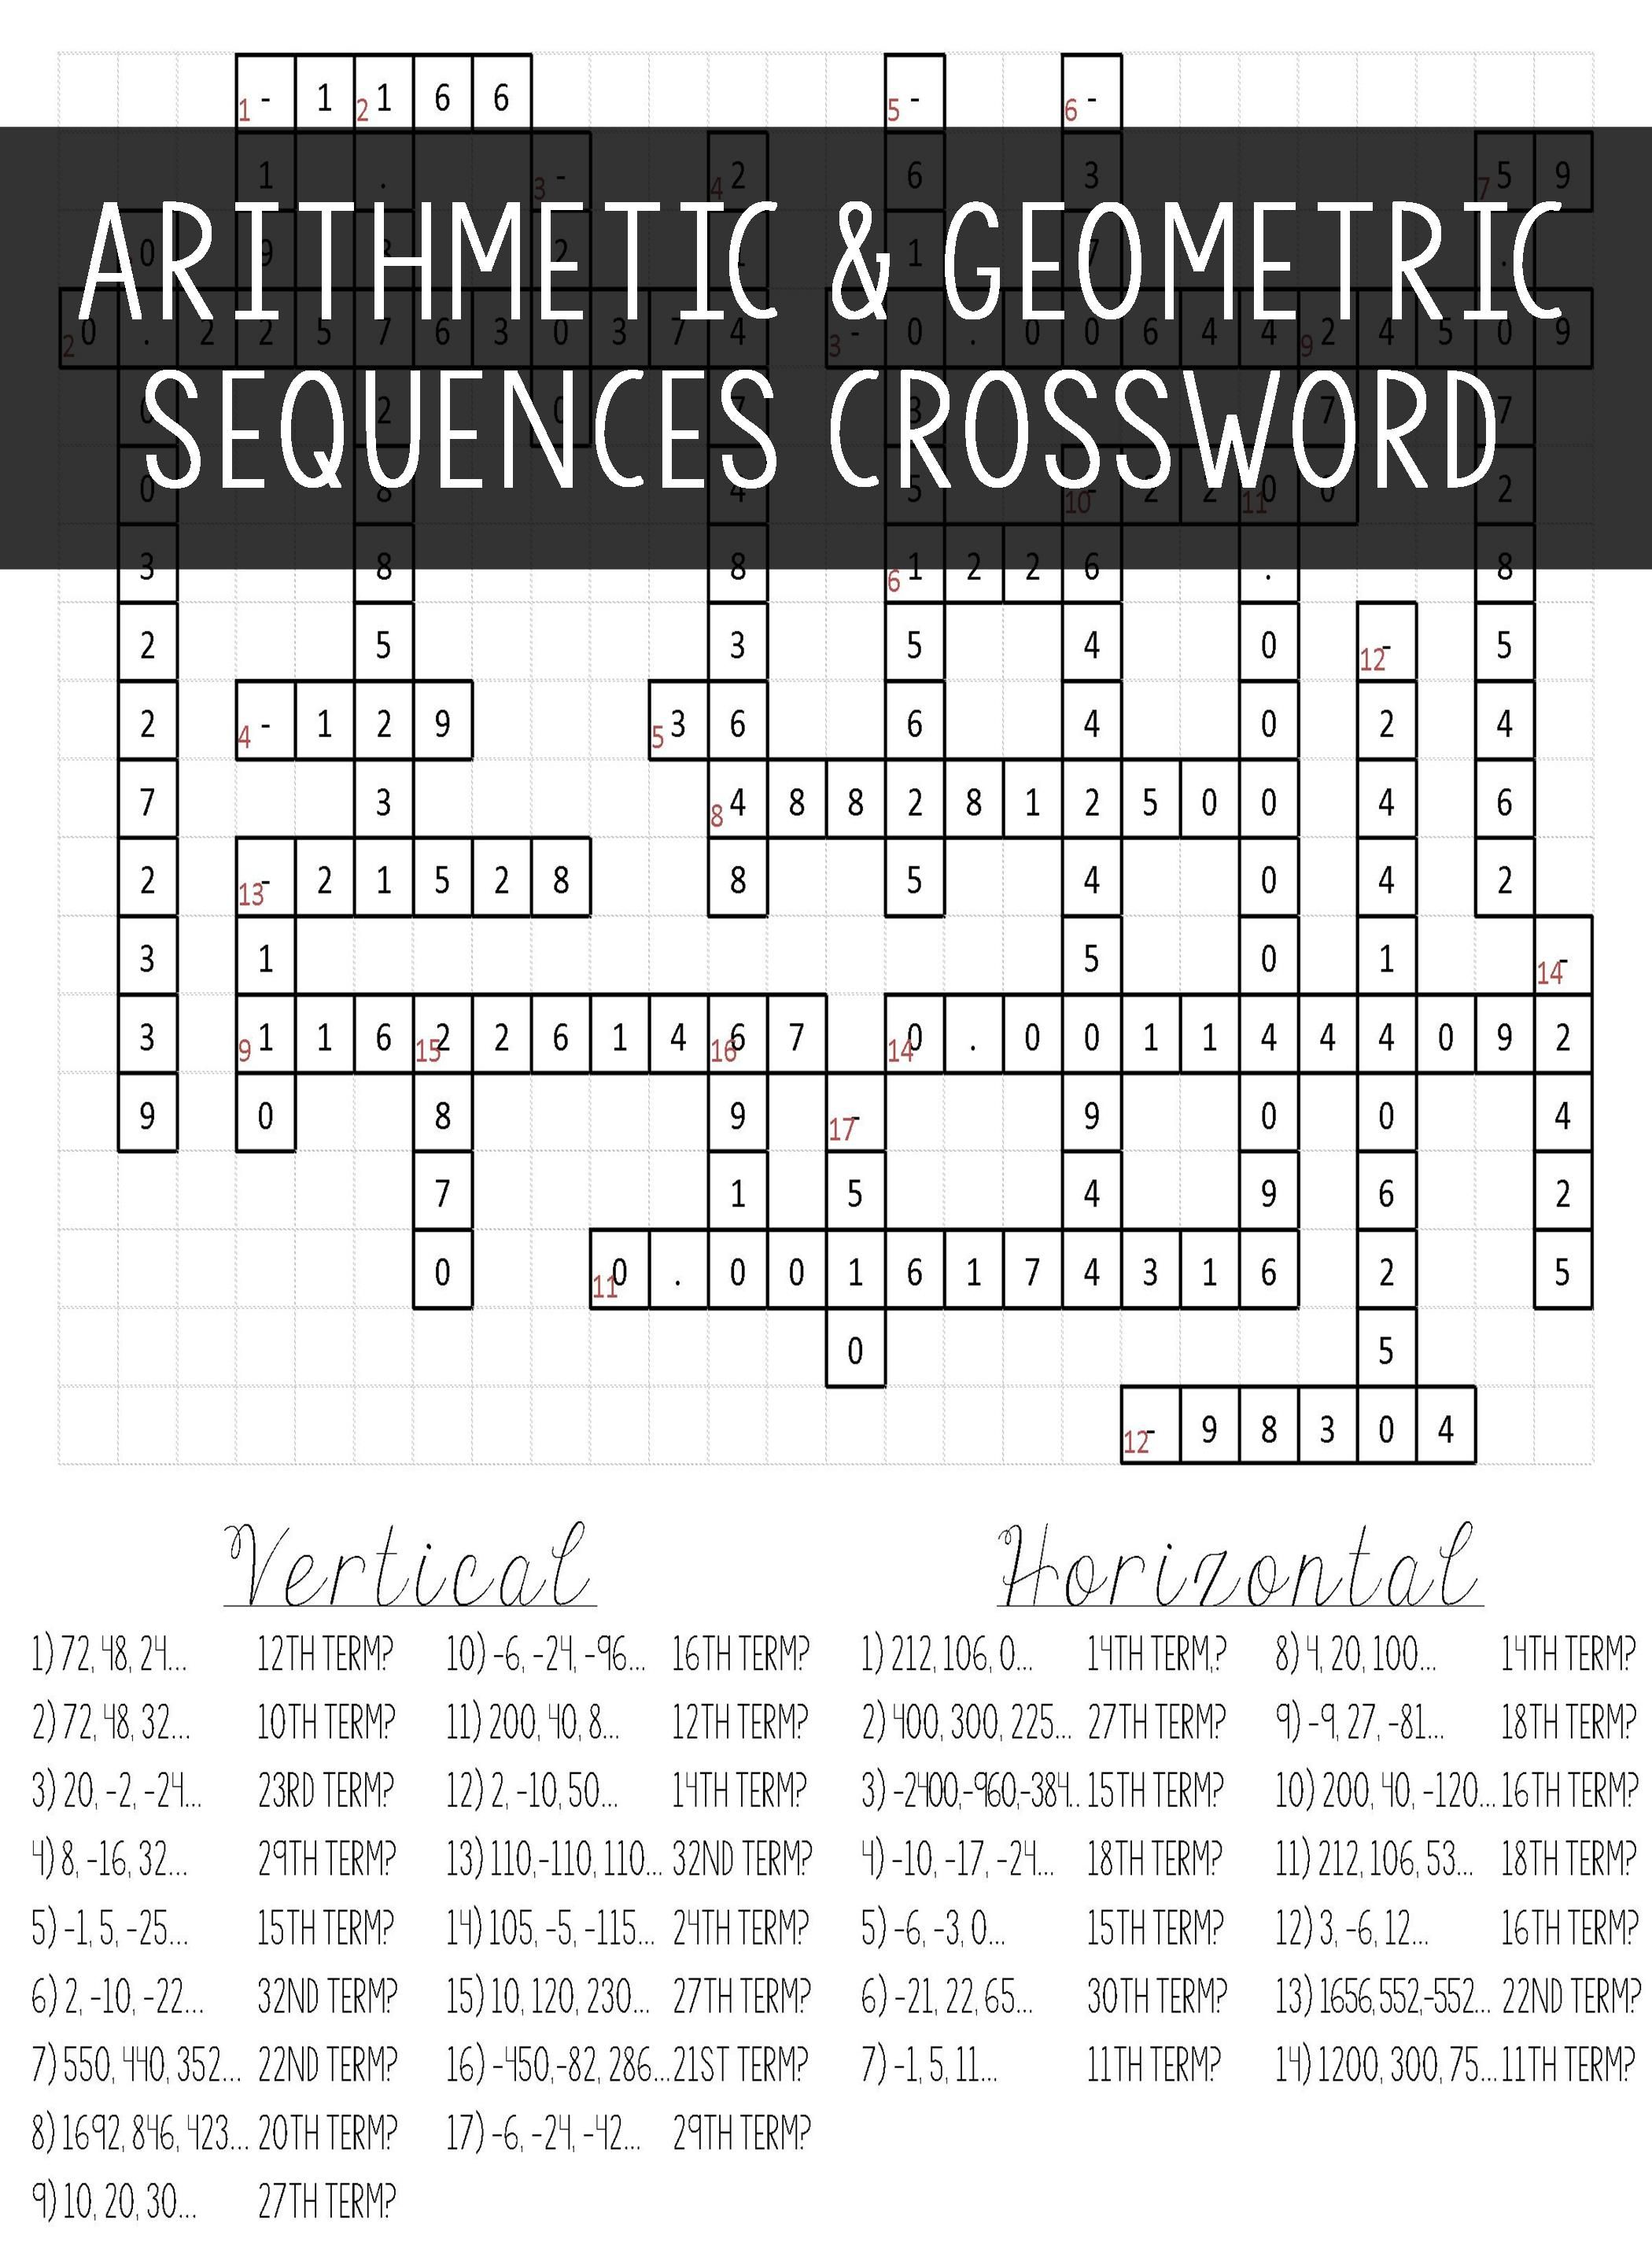 Arithmetic \u0026 Geometric Sequences Crossword Puzzle Activity Worksheet    Arithmetic sequences [ 2850 x 2100 Pixel ]